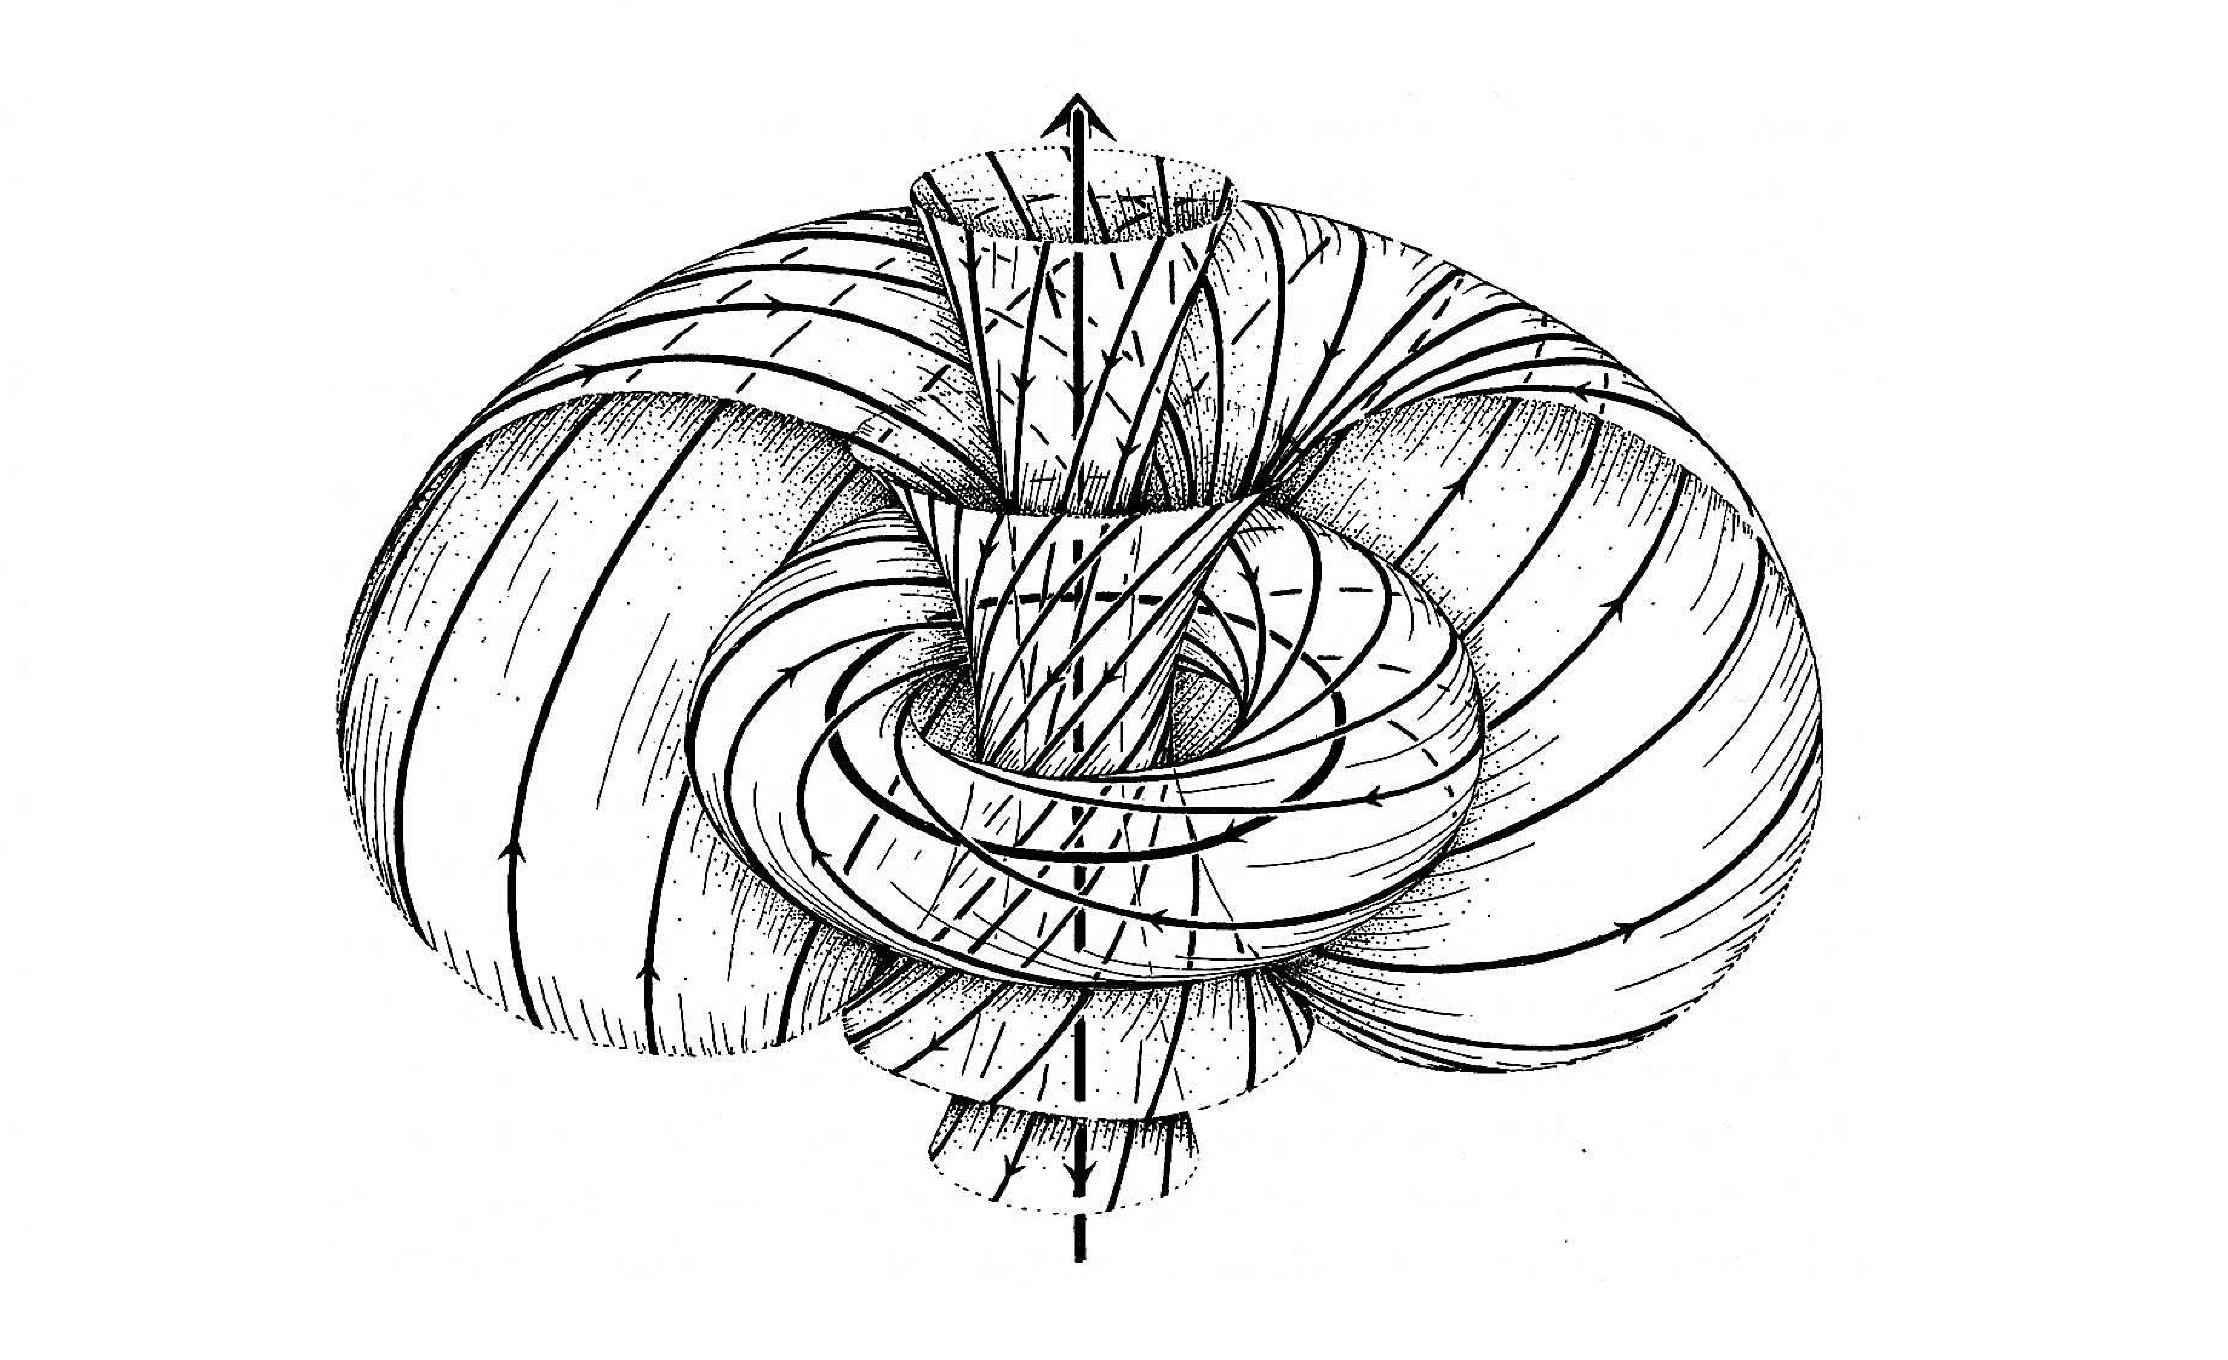 What are some common applications of knot theory in